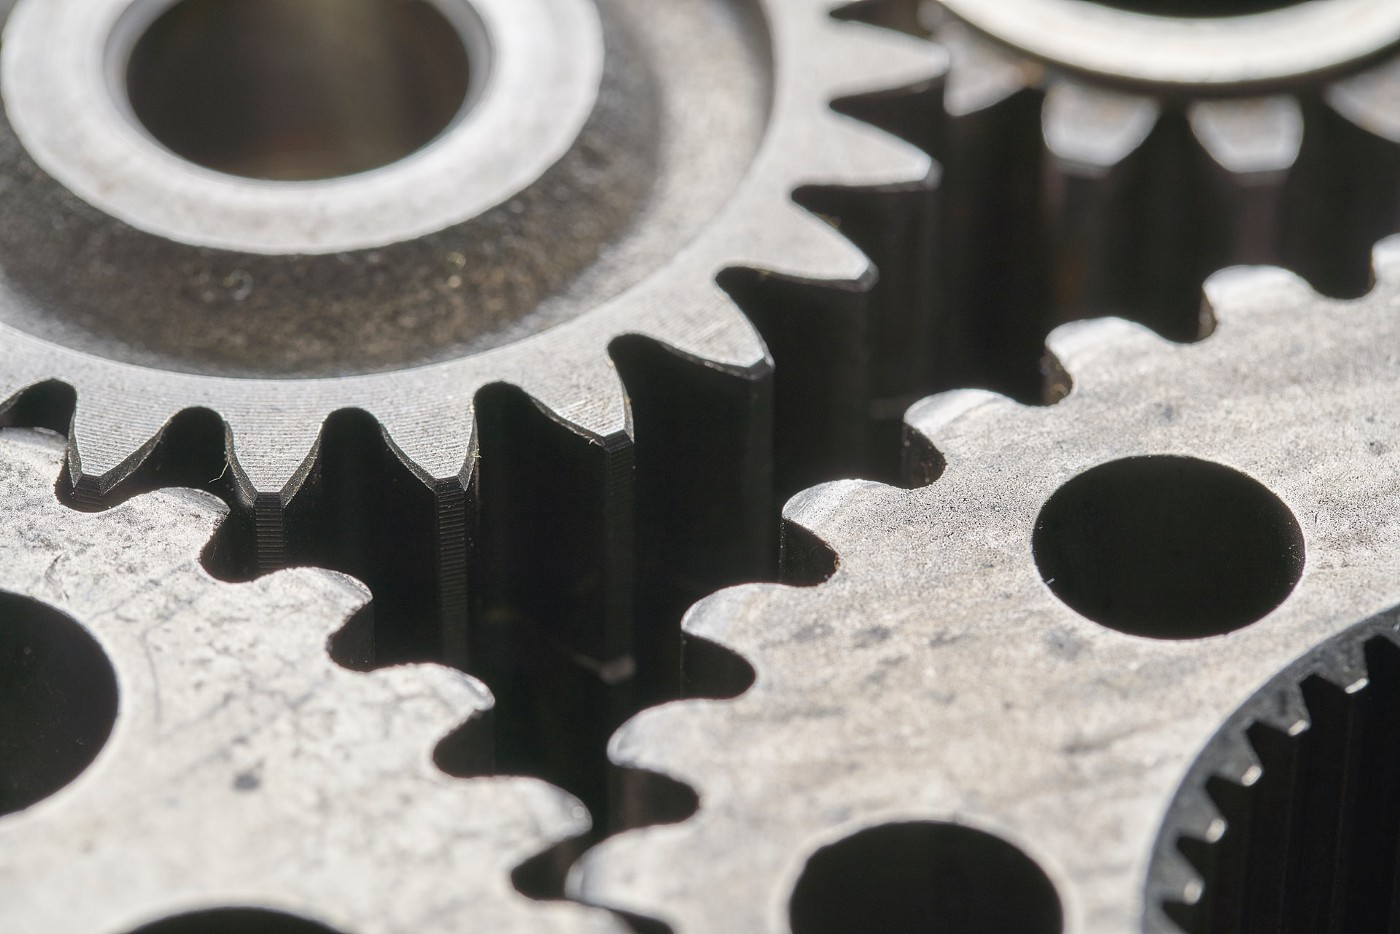 An image of gear cogs interleaved together.